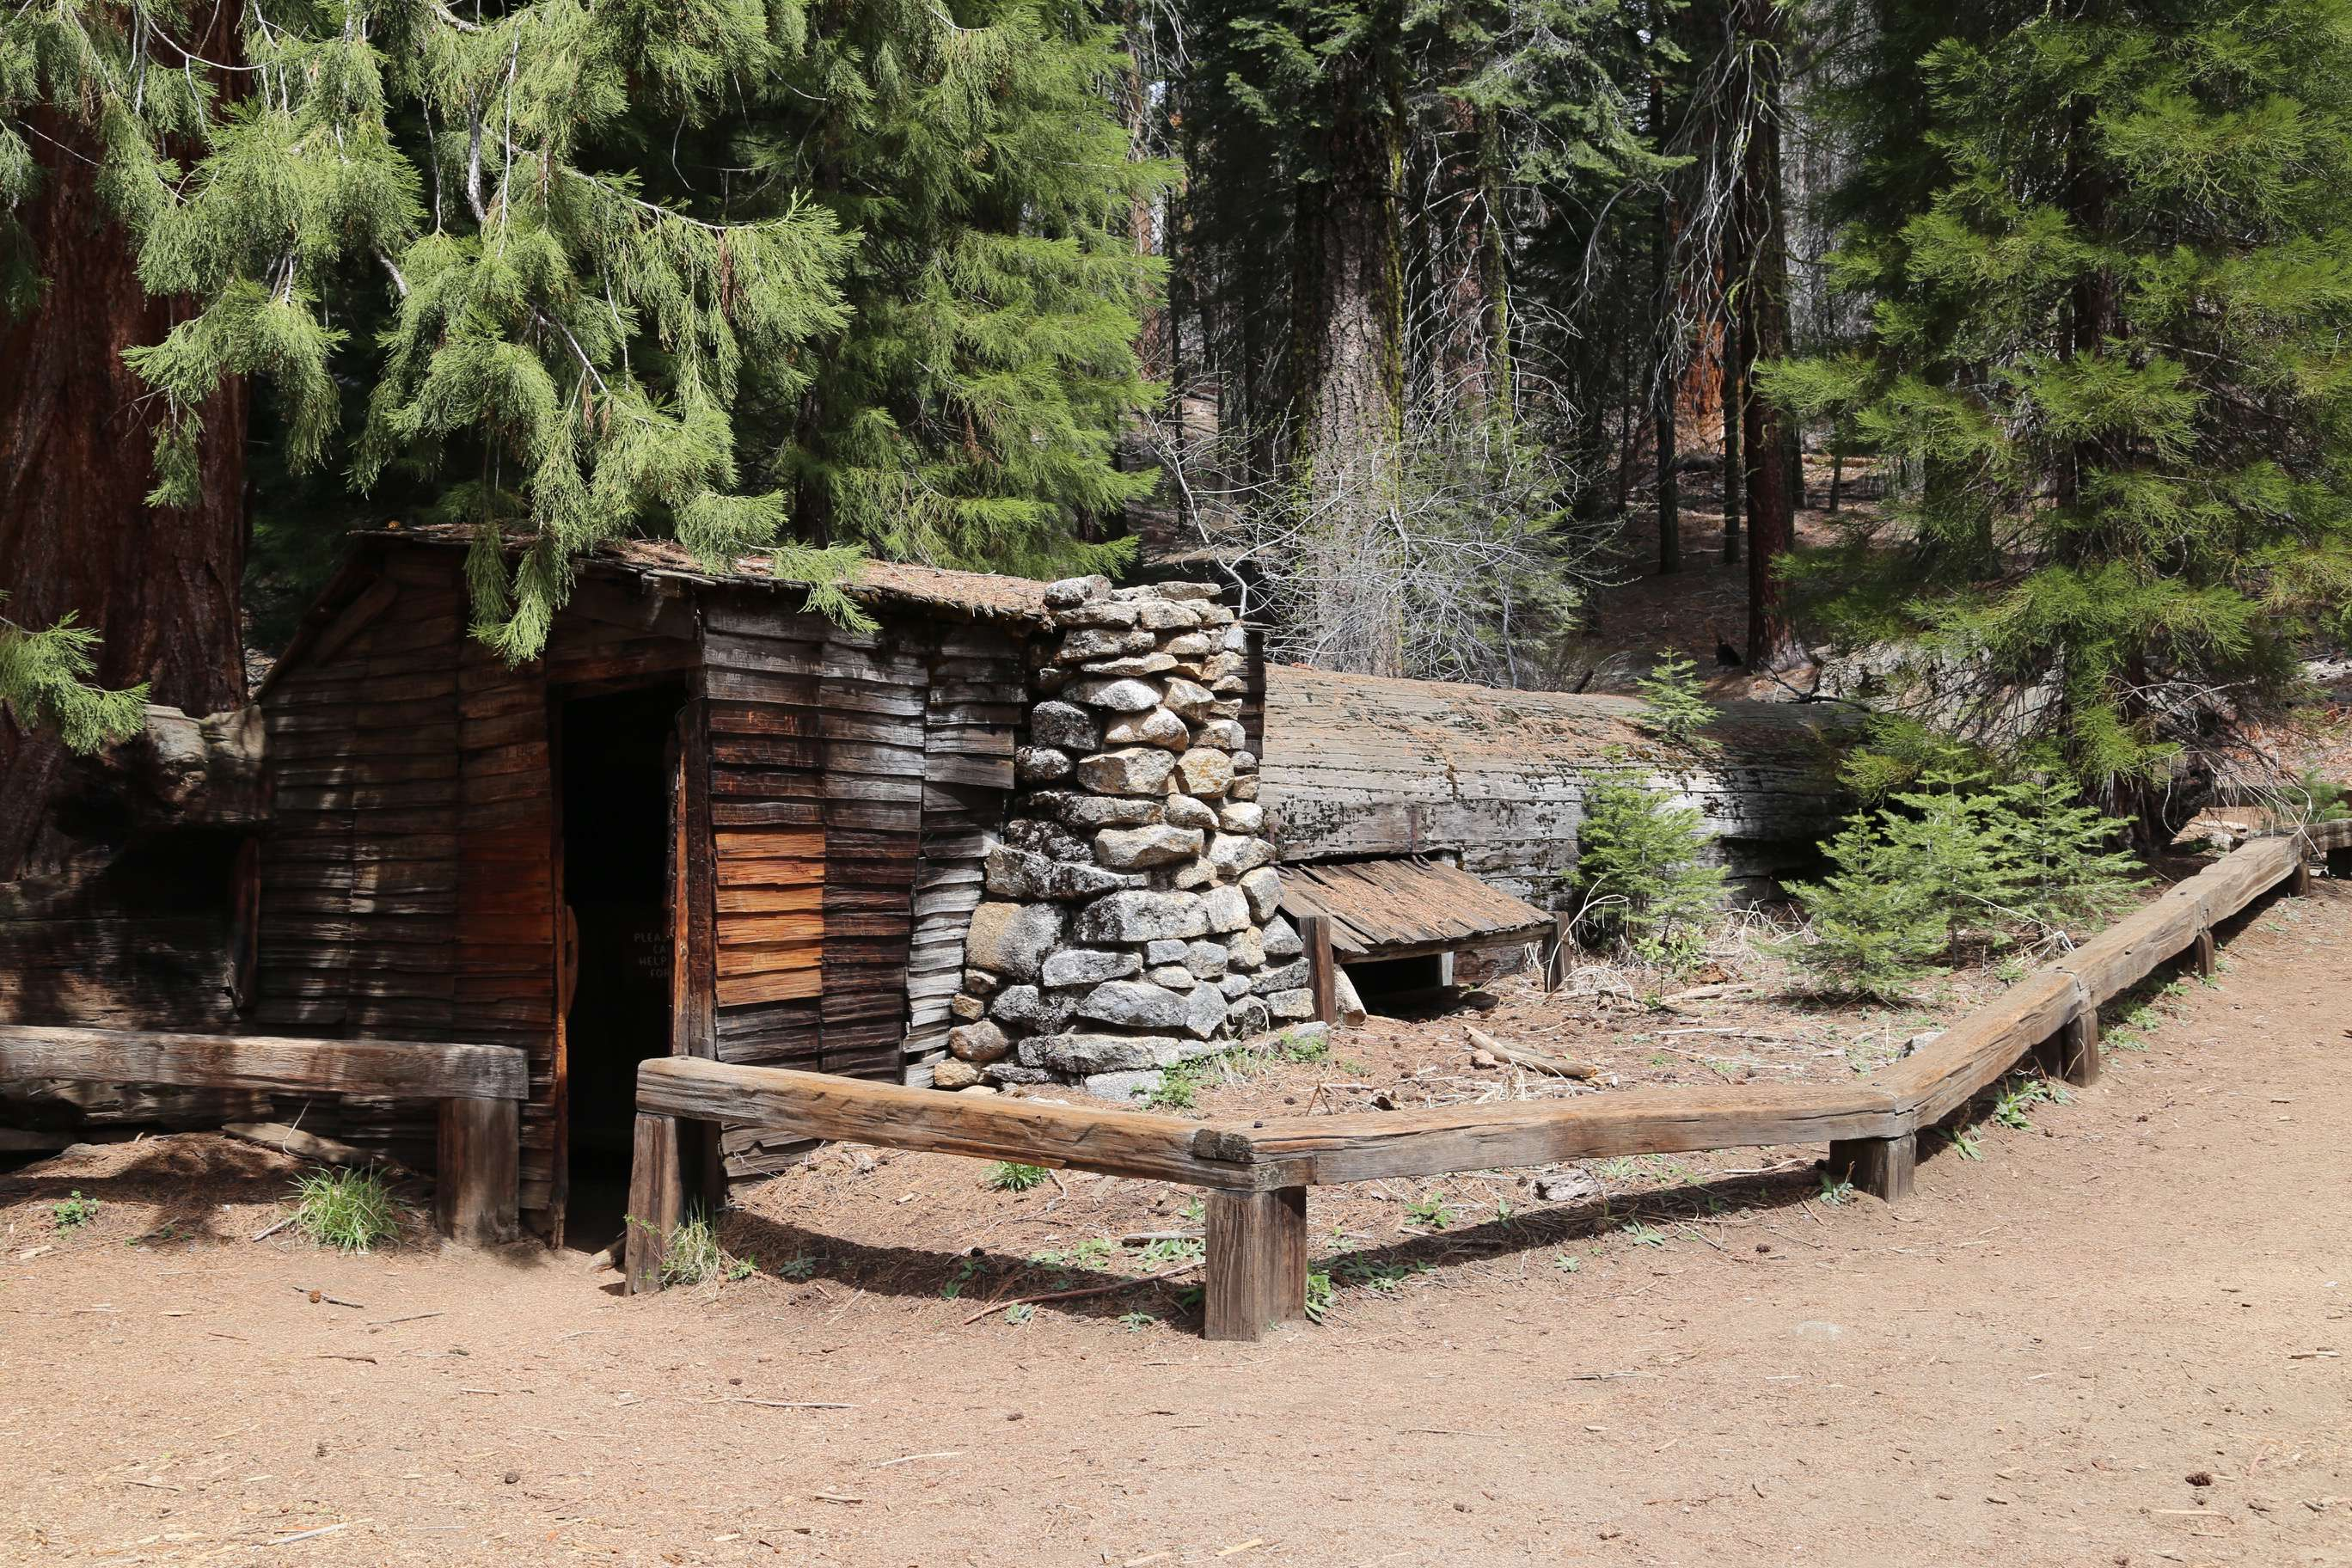 Tharp's Log, SNP, was used as a home and headquarters for the rancher who fashioned a 70' home inside the fallen giant.